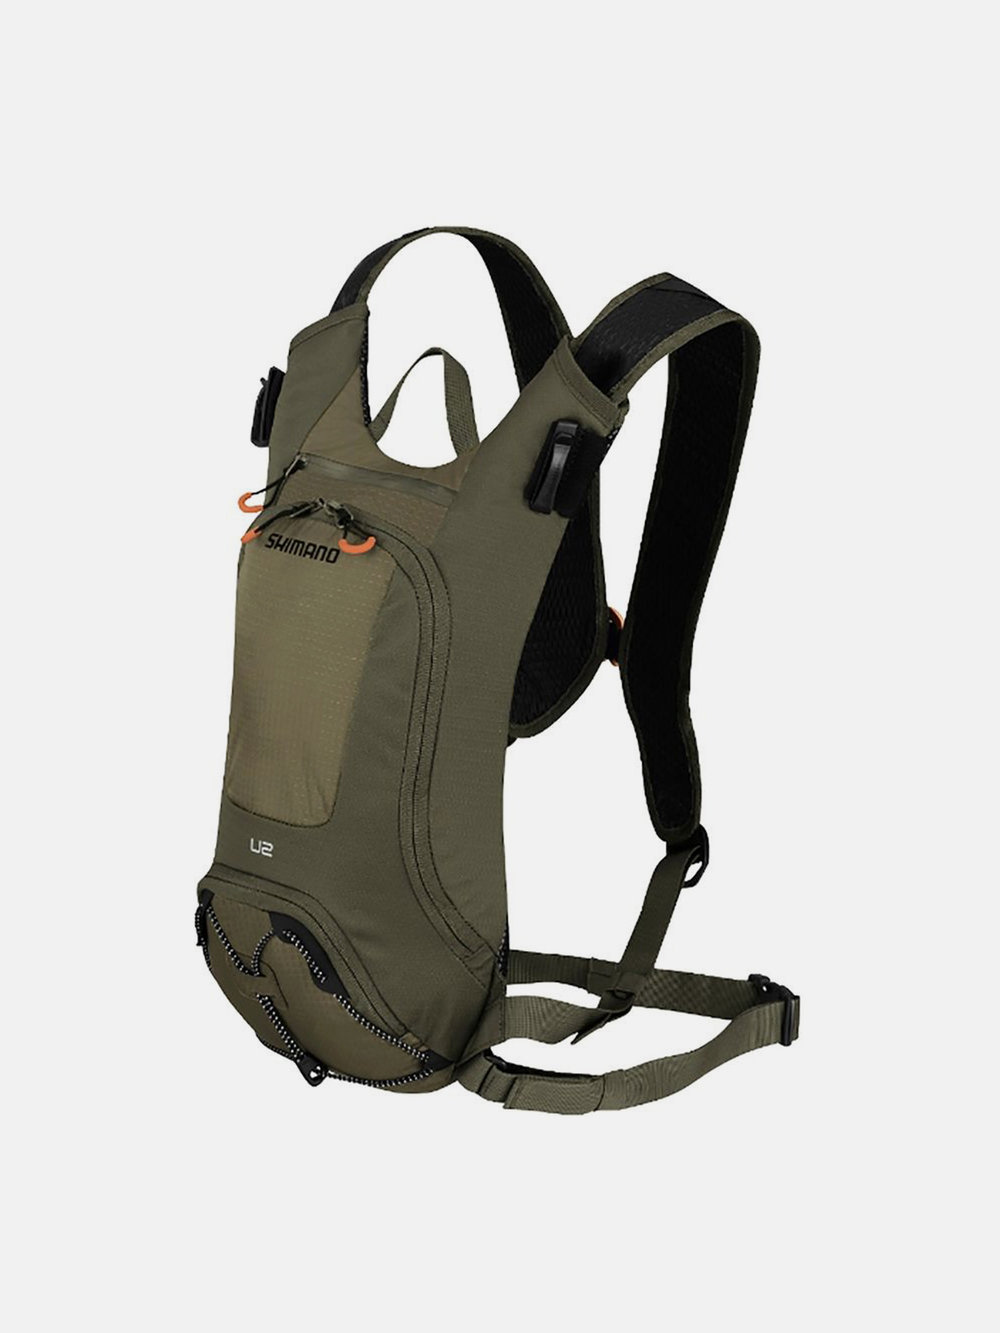 Shimano Unzen 2L Hydration Backpack - $79.99